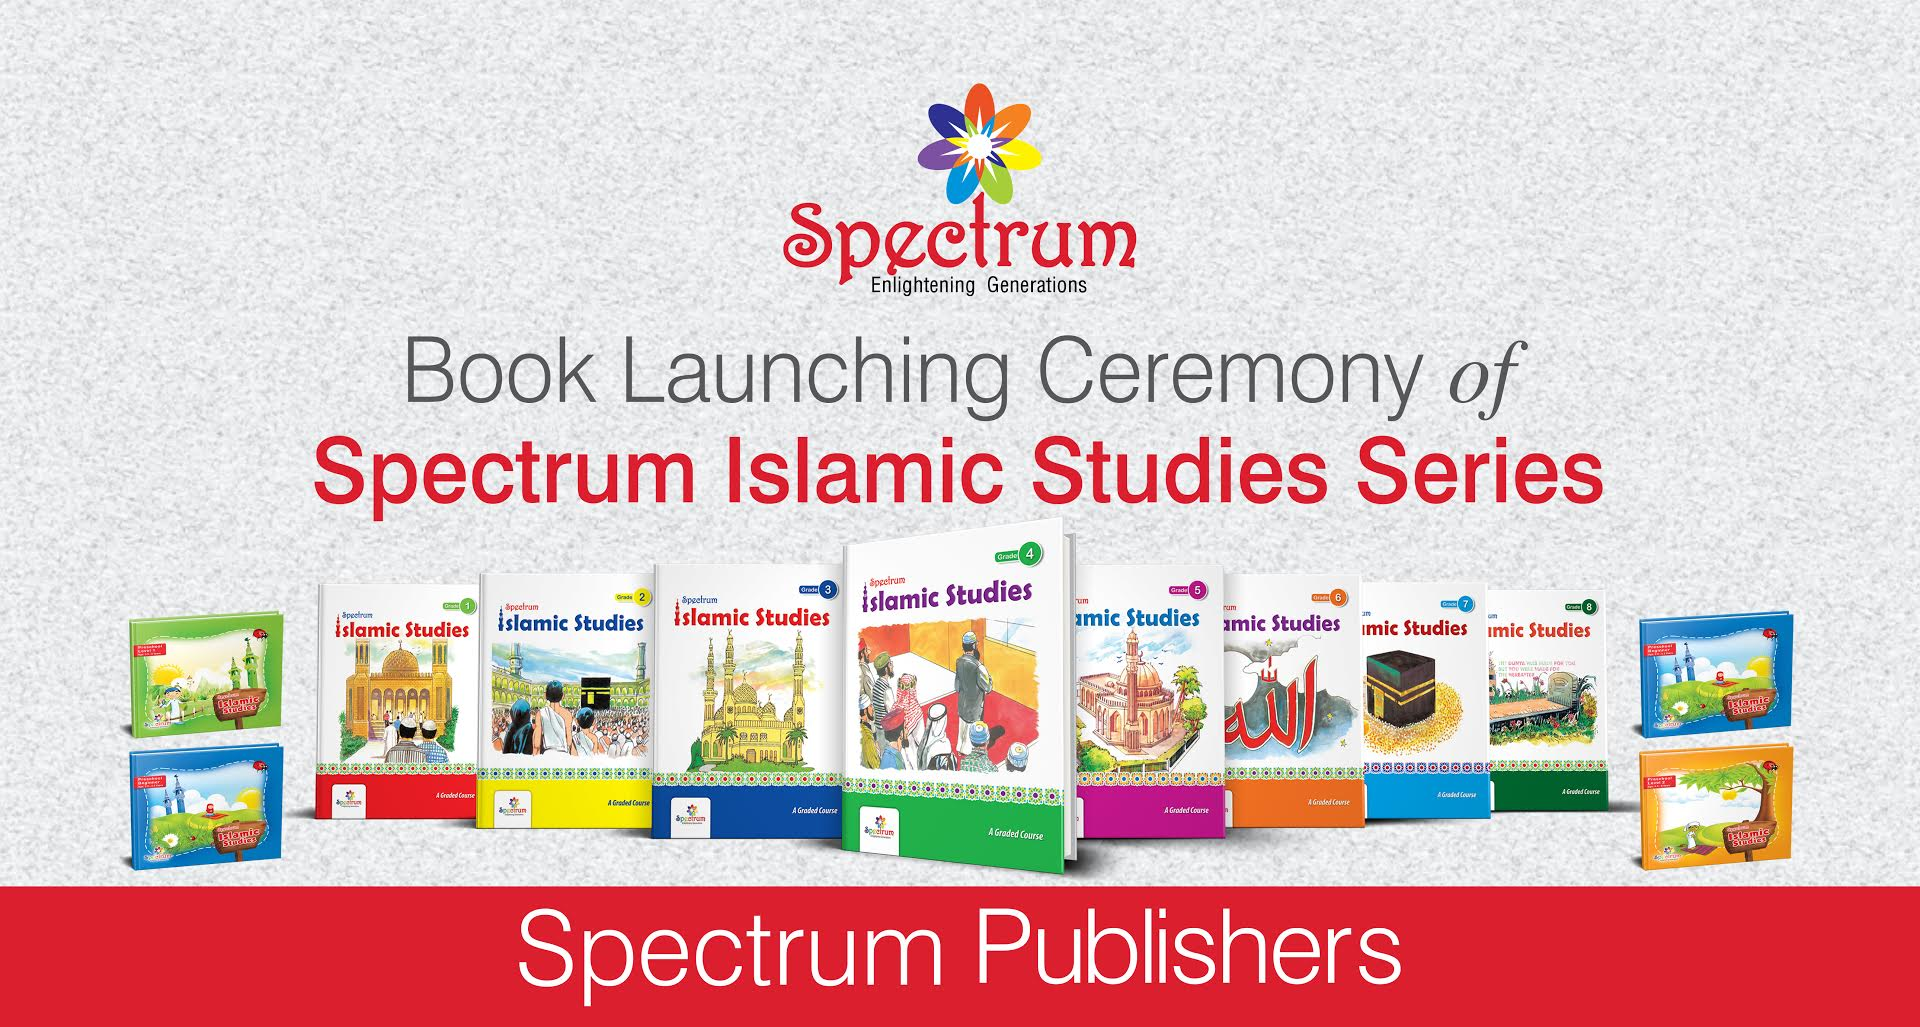 Spectrum launches an activity-based series of Islamic Studies